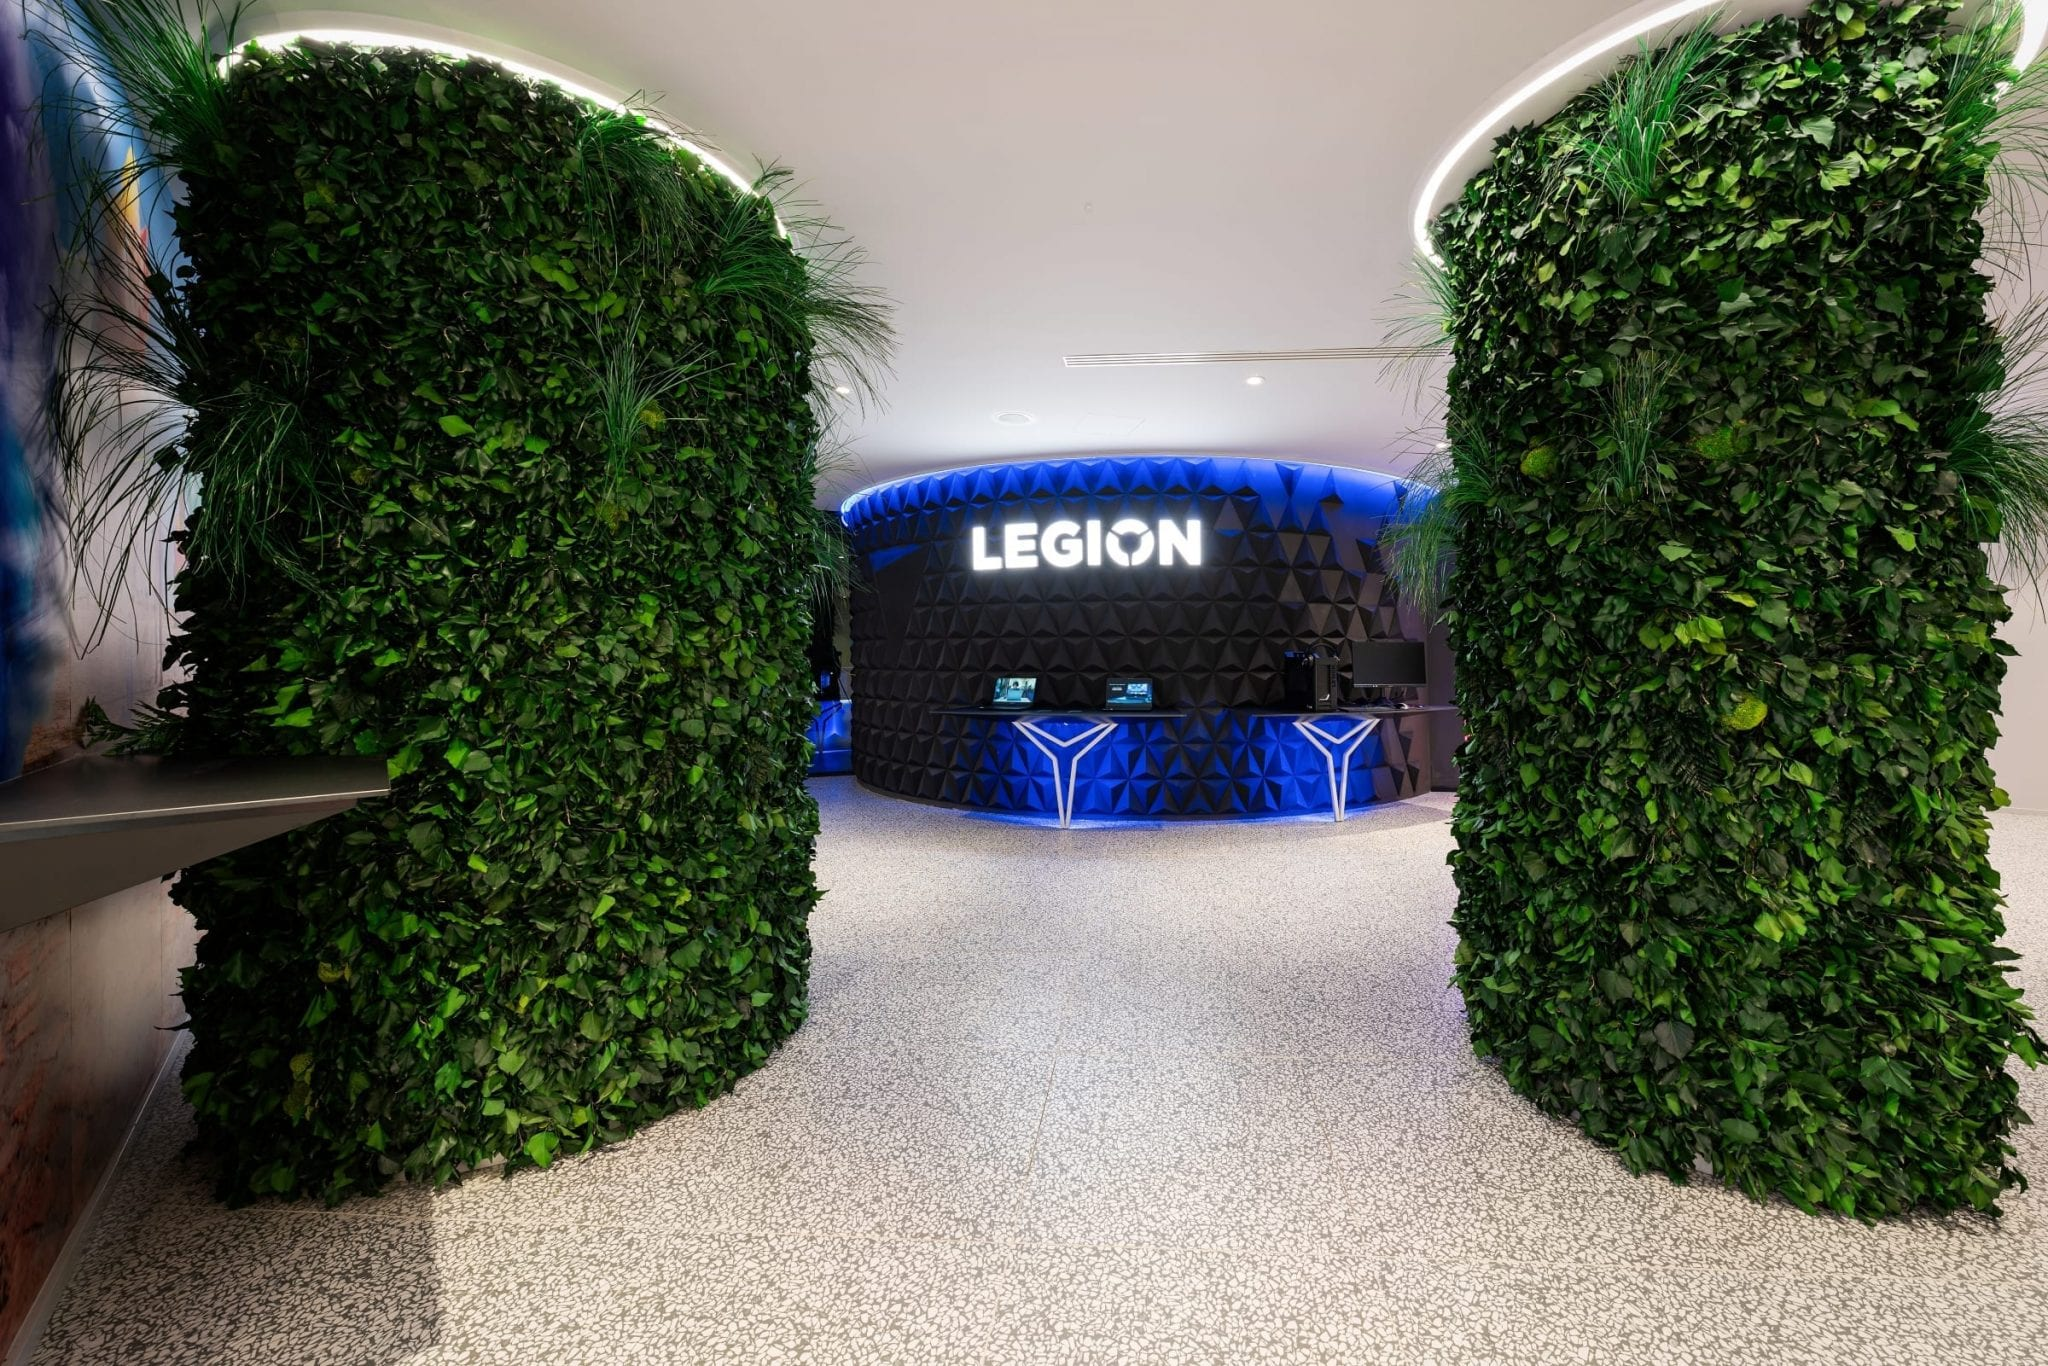 Spazio Lenovo concept store interior with vertical plant displays and Lenovo Legion devices